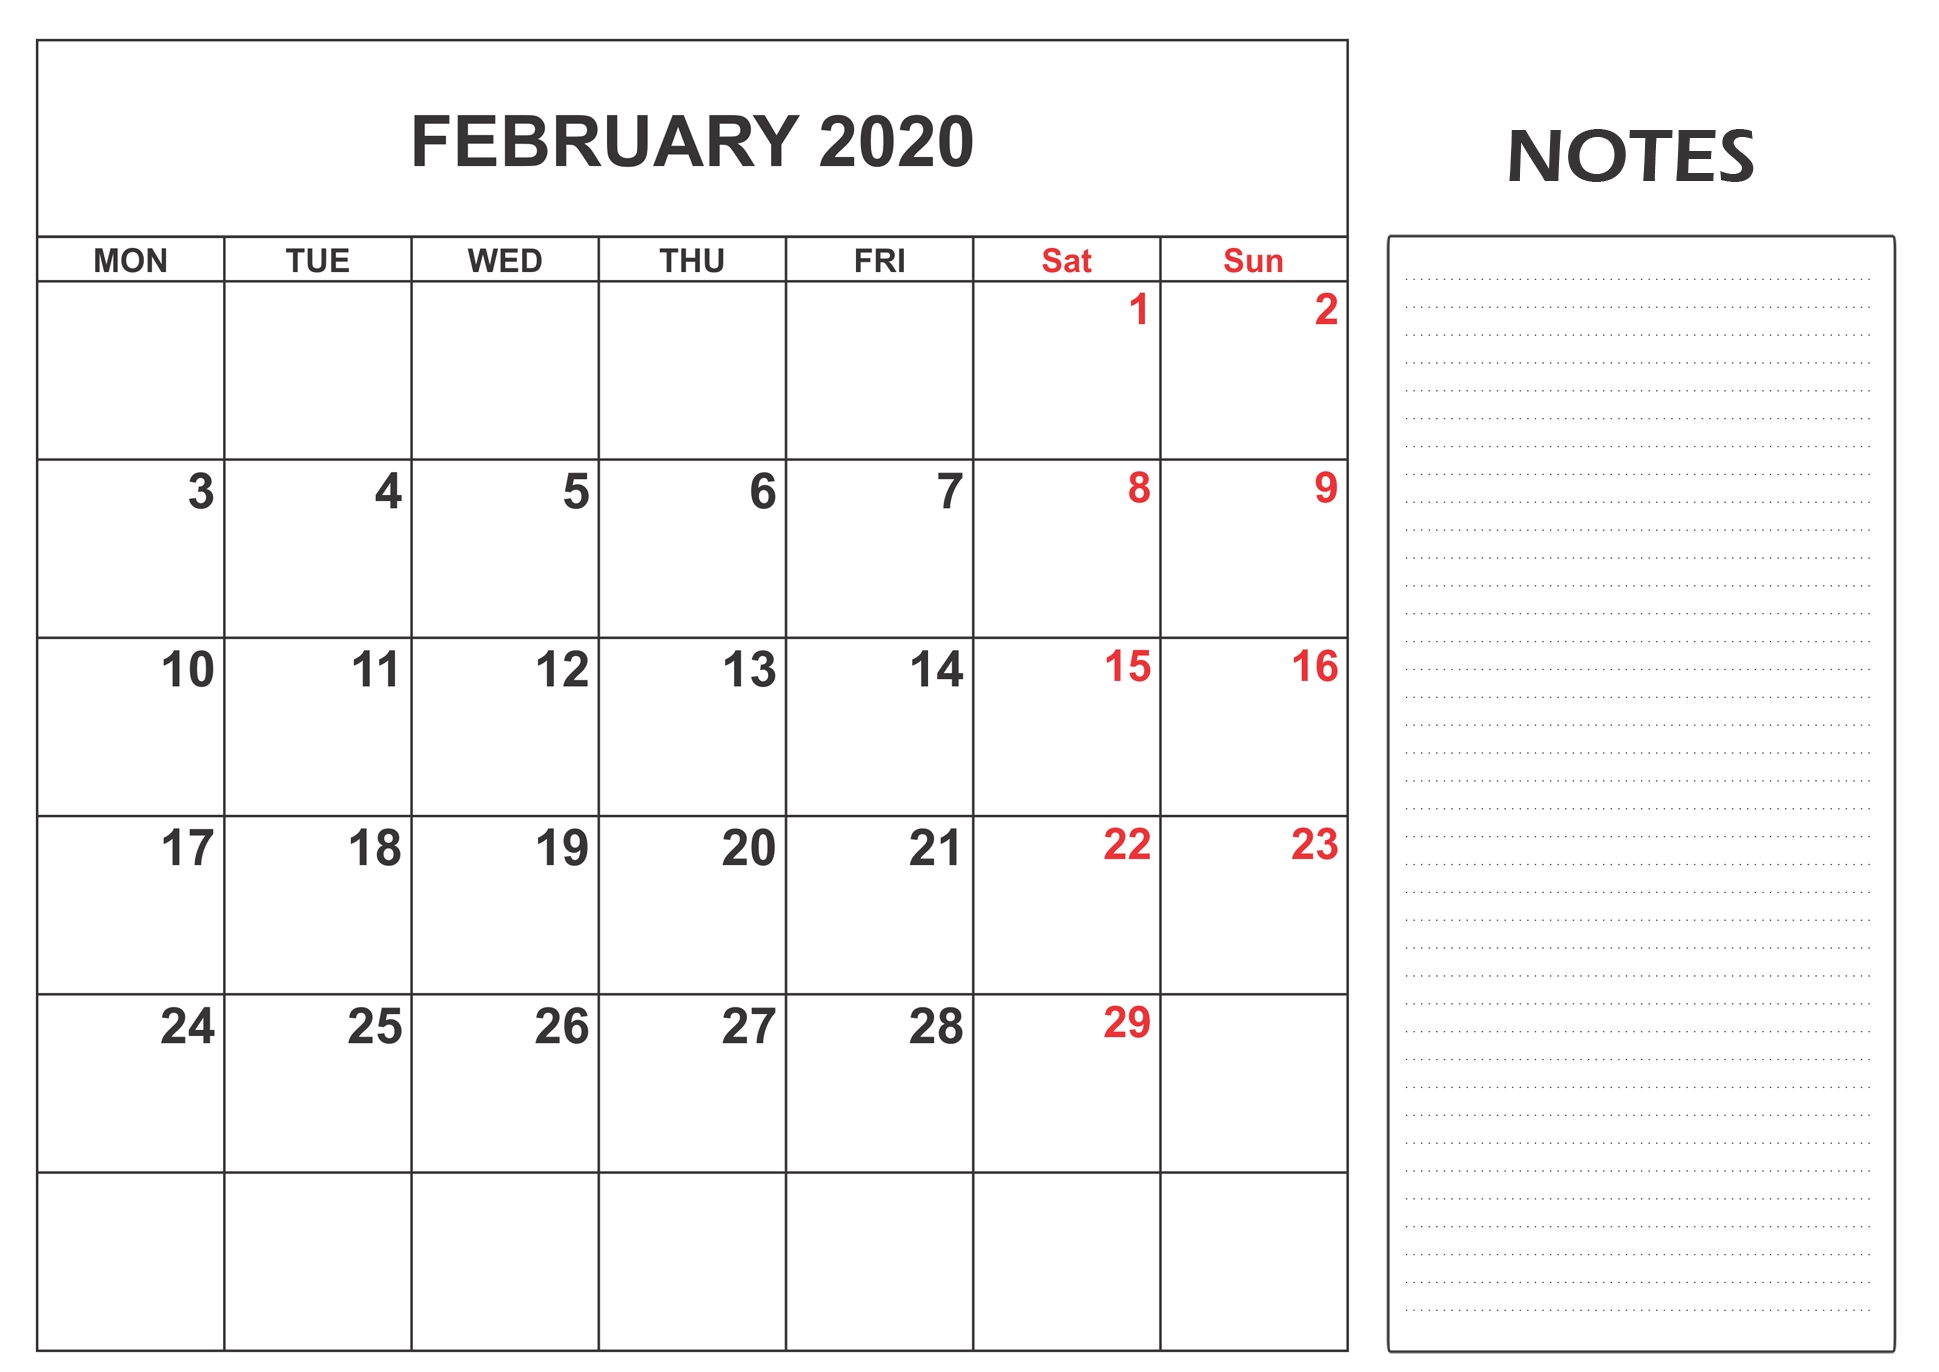 Blank Calendar February 2020 With Notes Monthly - Set Your